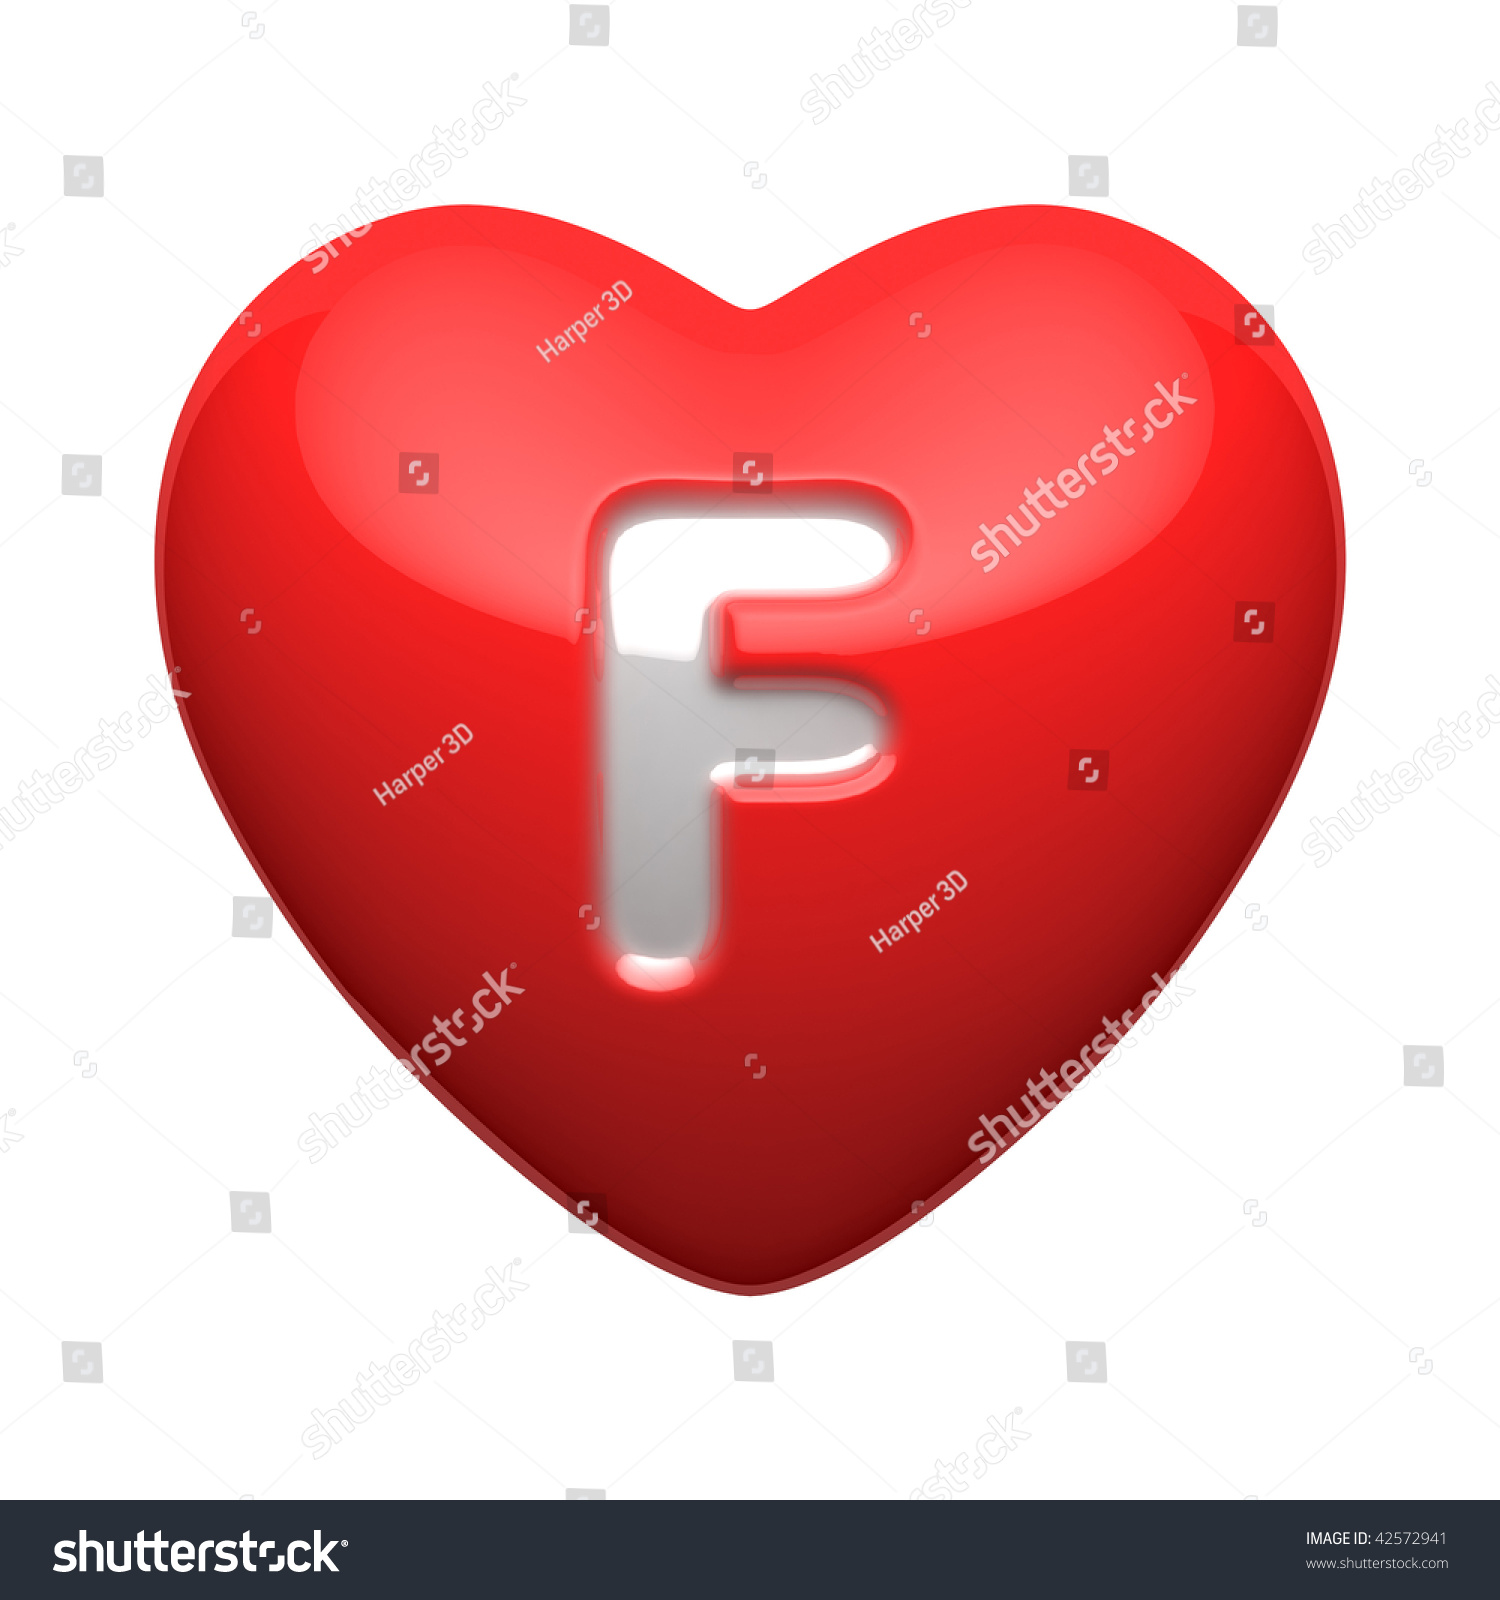 Letter F Alphabet Hearts There Clipping Stock Illustration 42572941     Letter F from alphabet of hearts  There is a clipping path